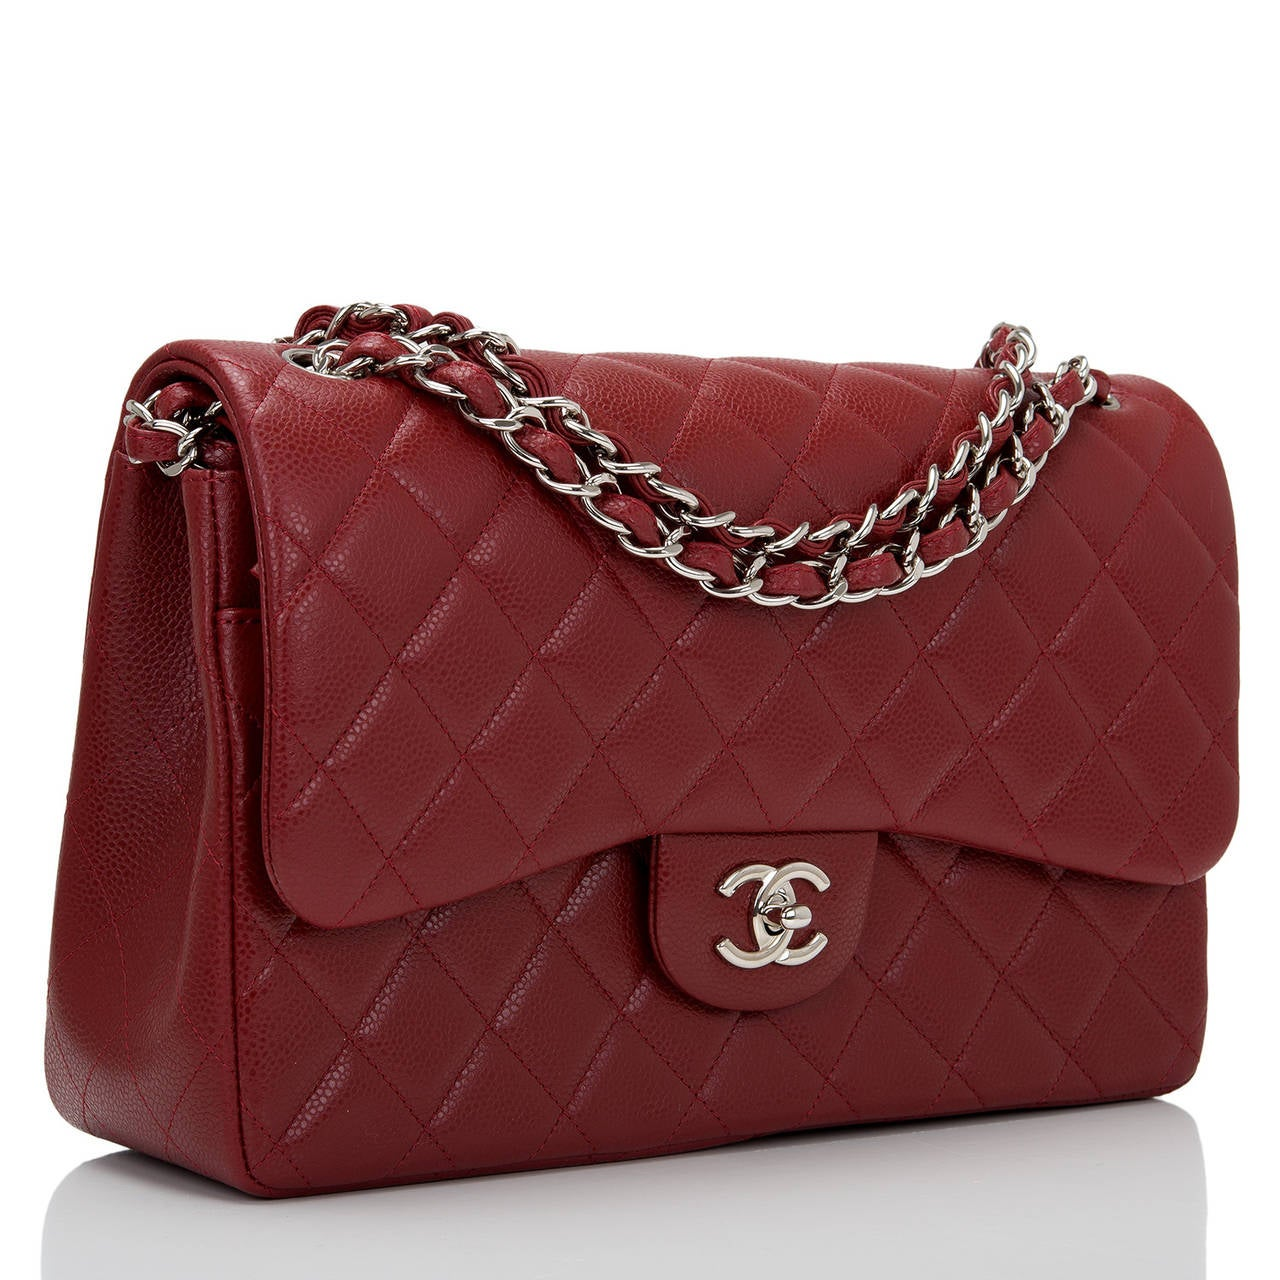 Chanel Jumbo Classic double flap bag of dark red caviar leather with silver tone hardware.  This bag features a front flap with signature CC turnlock closure, a half moon back pocket, and an adjustable interwoven silver tone chain link and dark